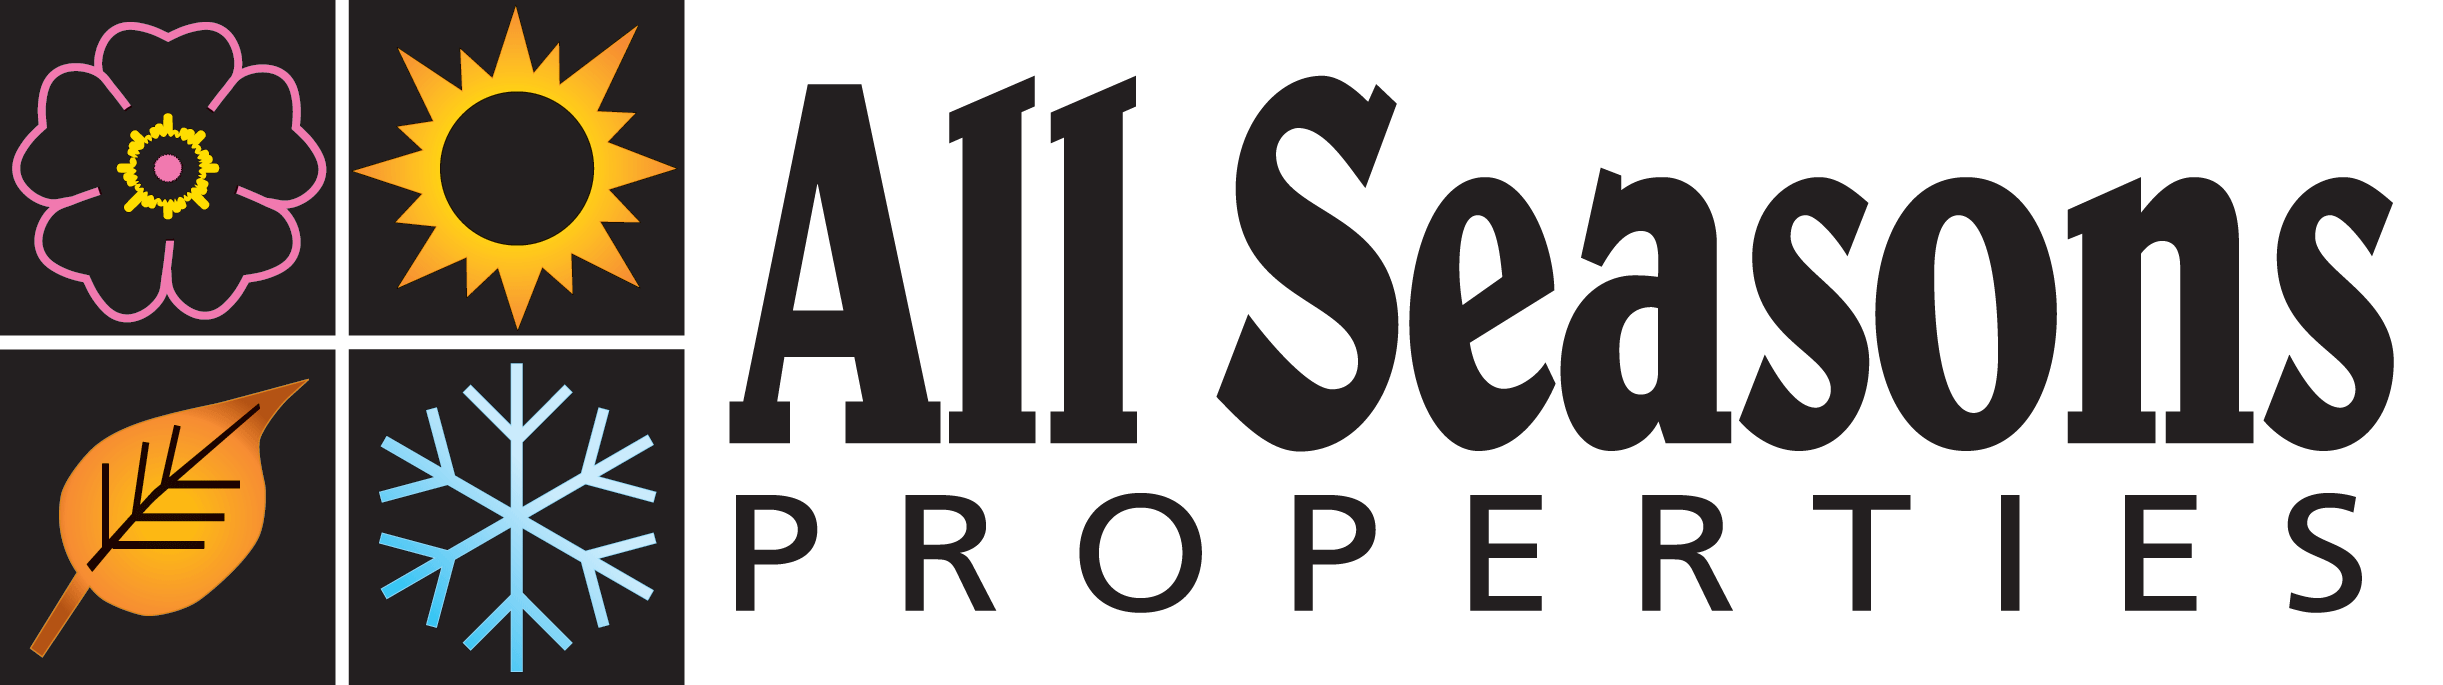 All Seasons Properties, LLC logo